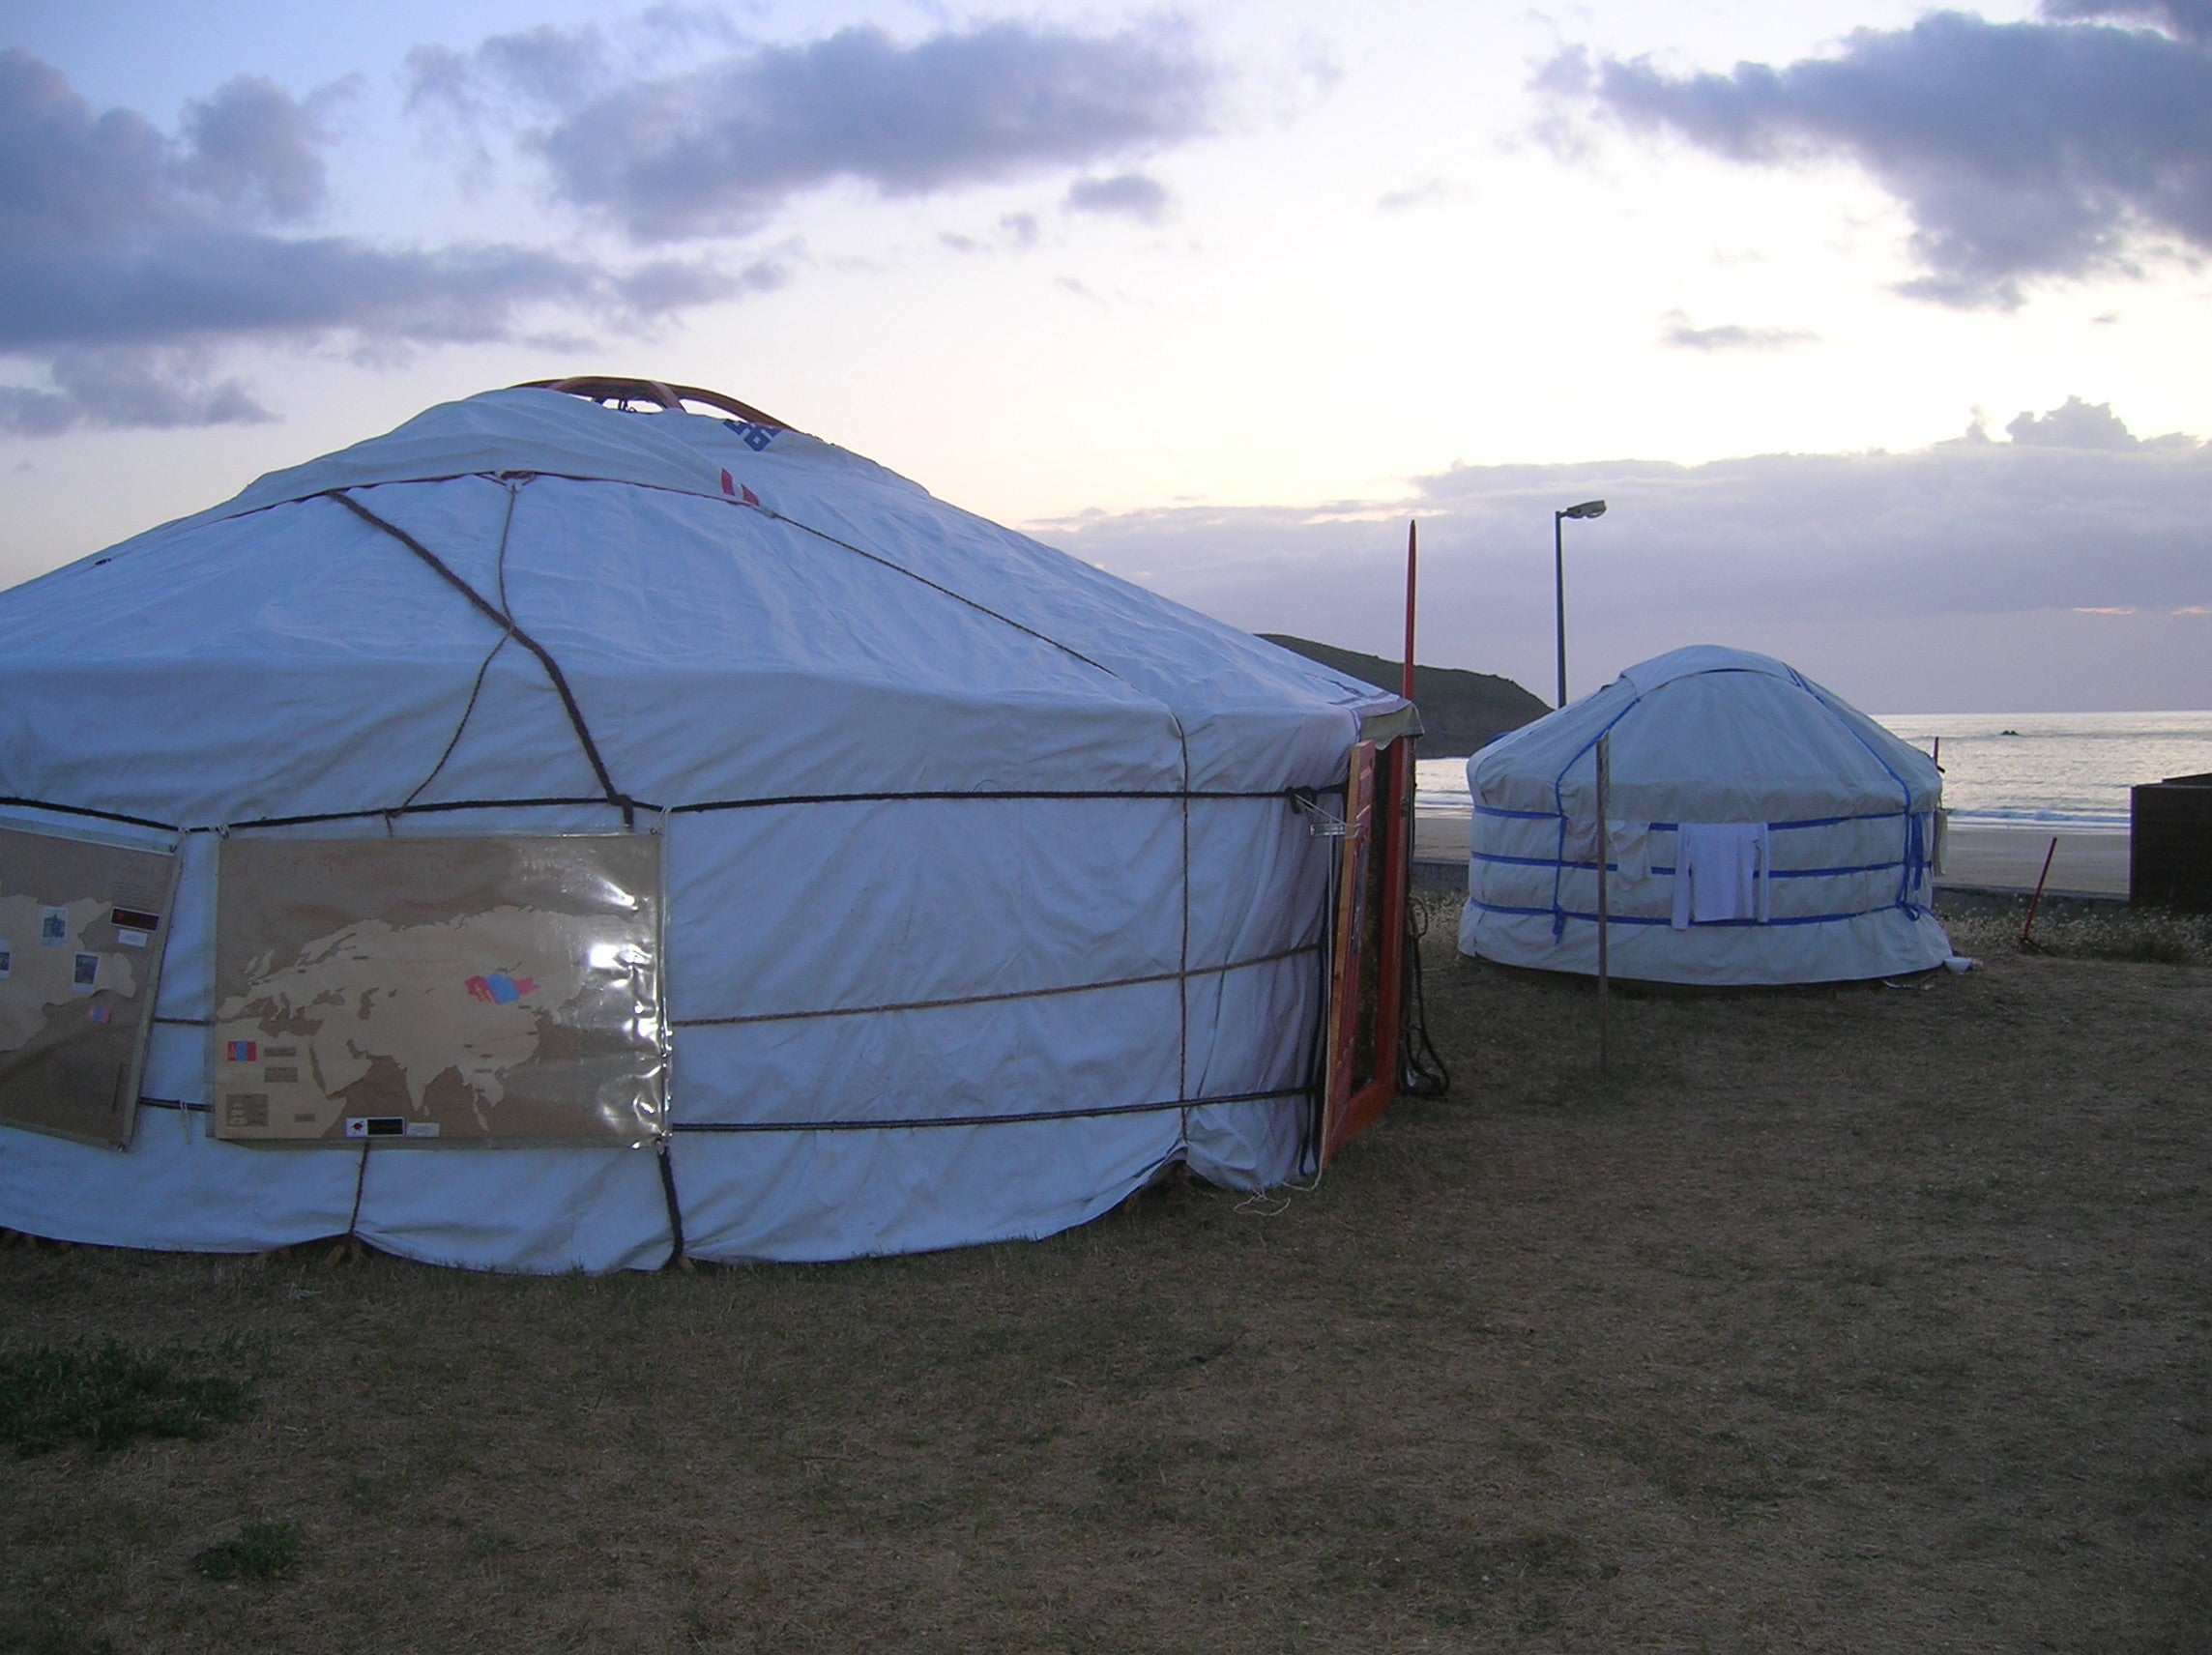 Tent in Saint-Lunaire